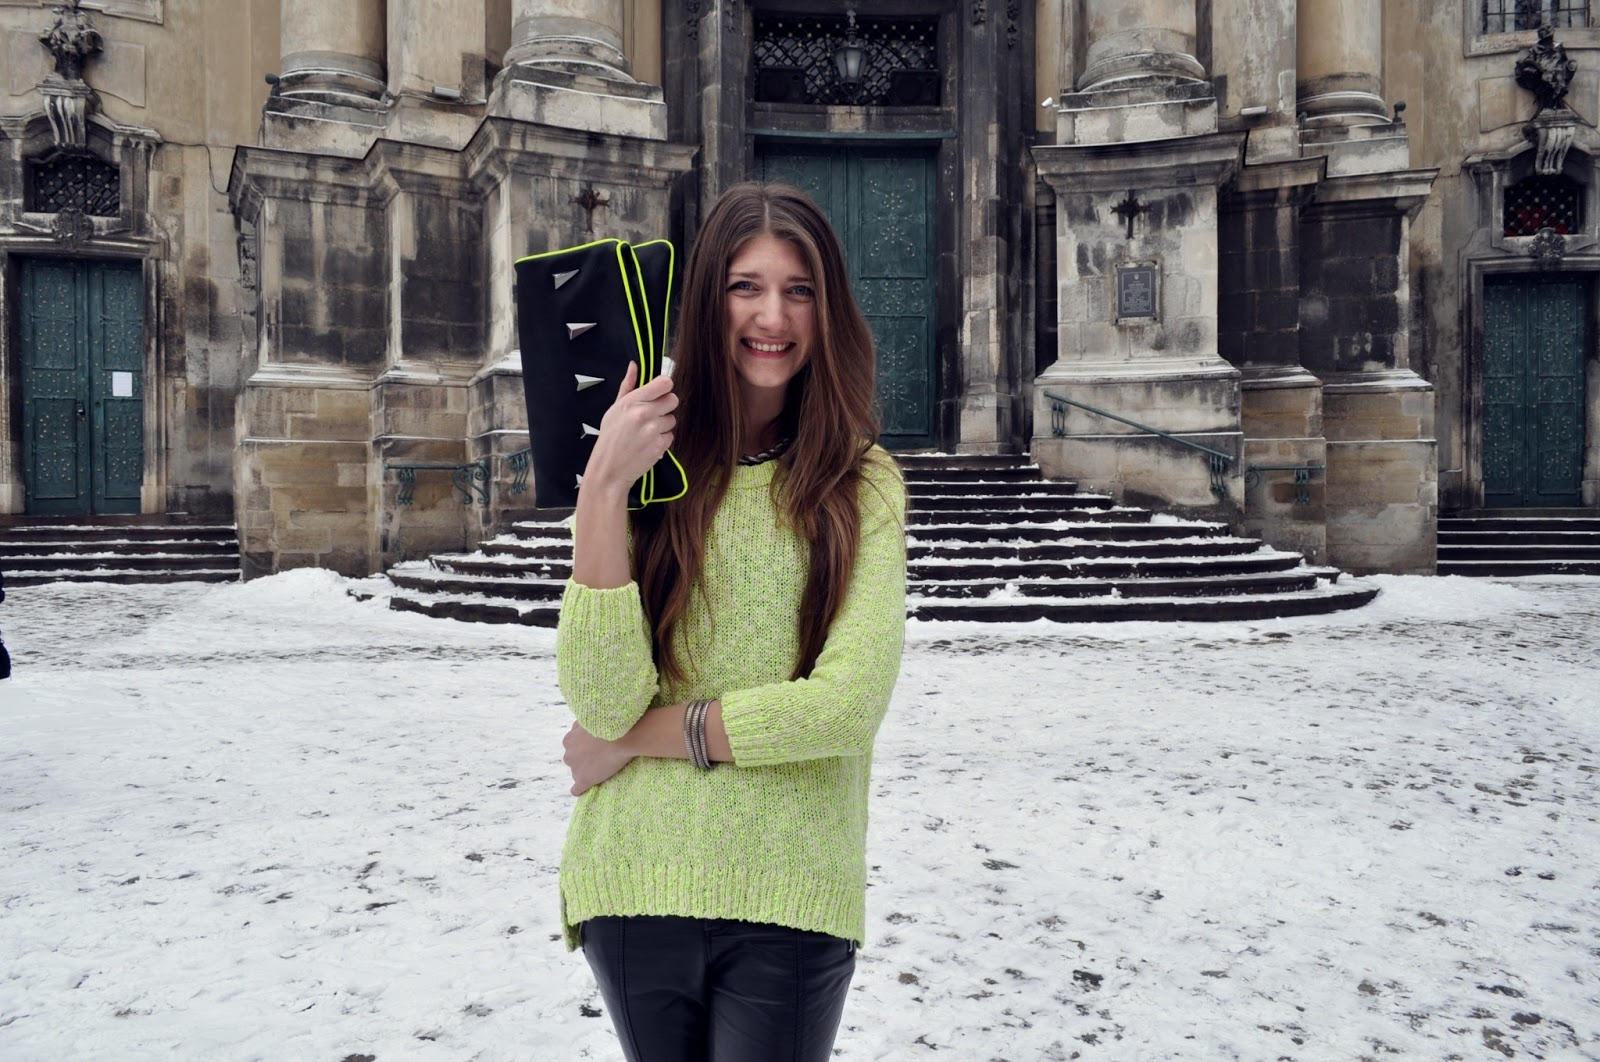 Yulia si neon love or lviv outfit 3 neon love or lviv outfit 3 publicscrutiny Gallery